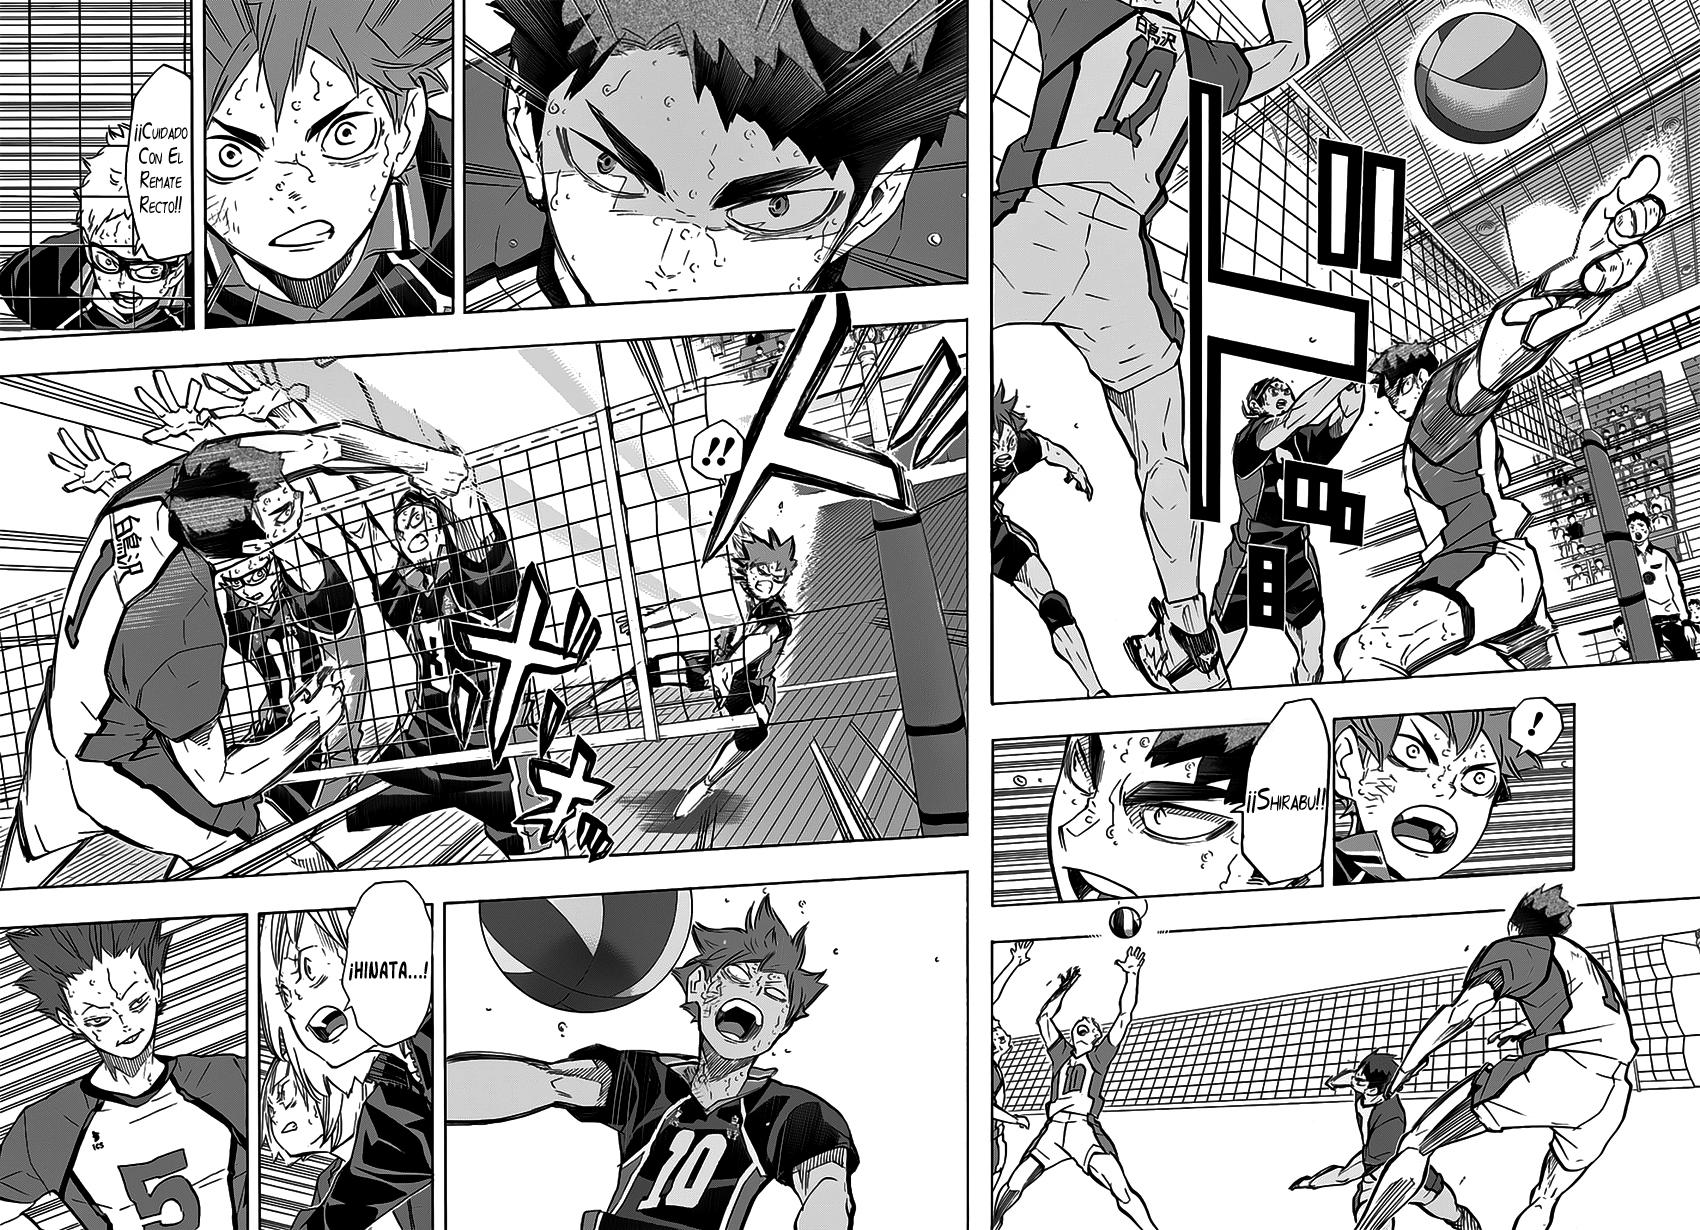 https://c5.ninemanga.com/es_manga/10/10/435128/e8258e5140317ff36c7f8225a3bf9590.jpg Page 3